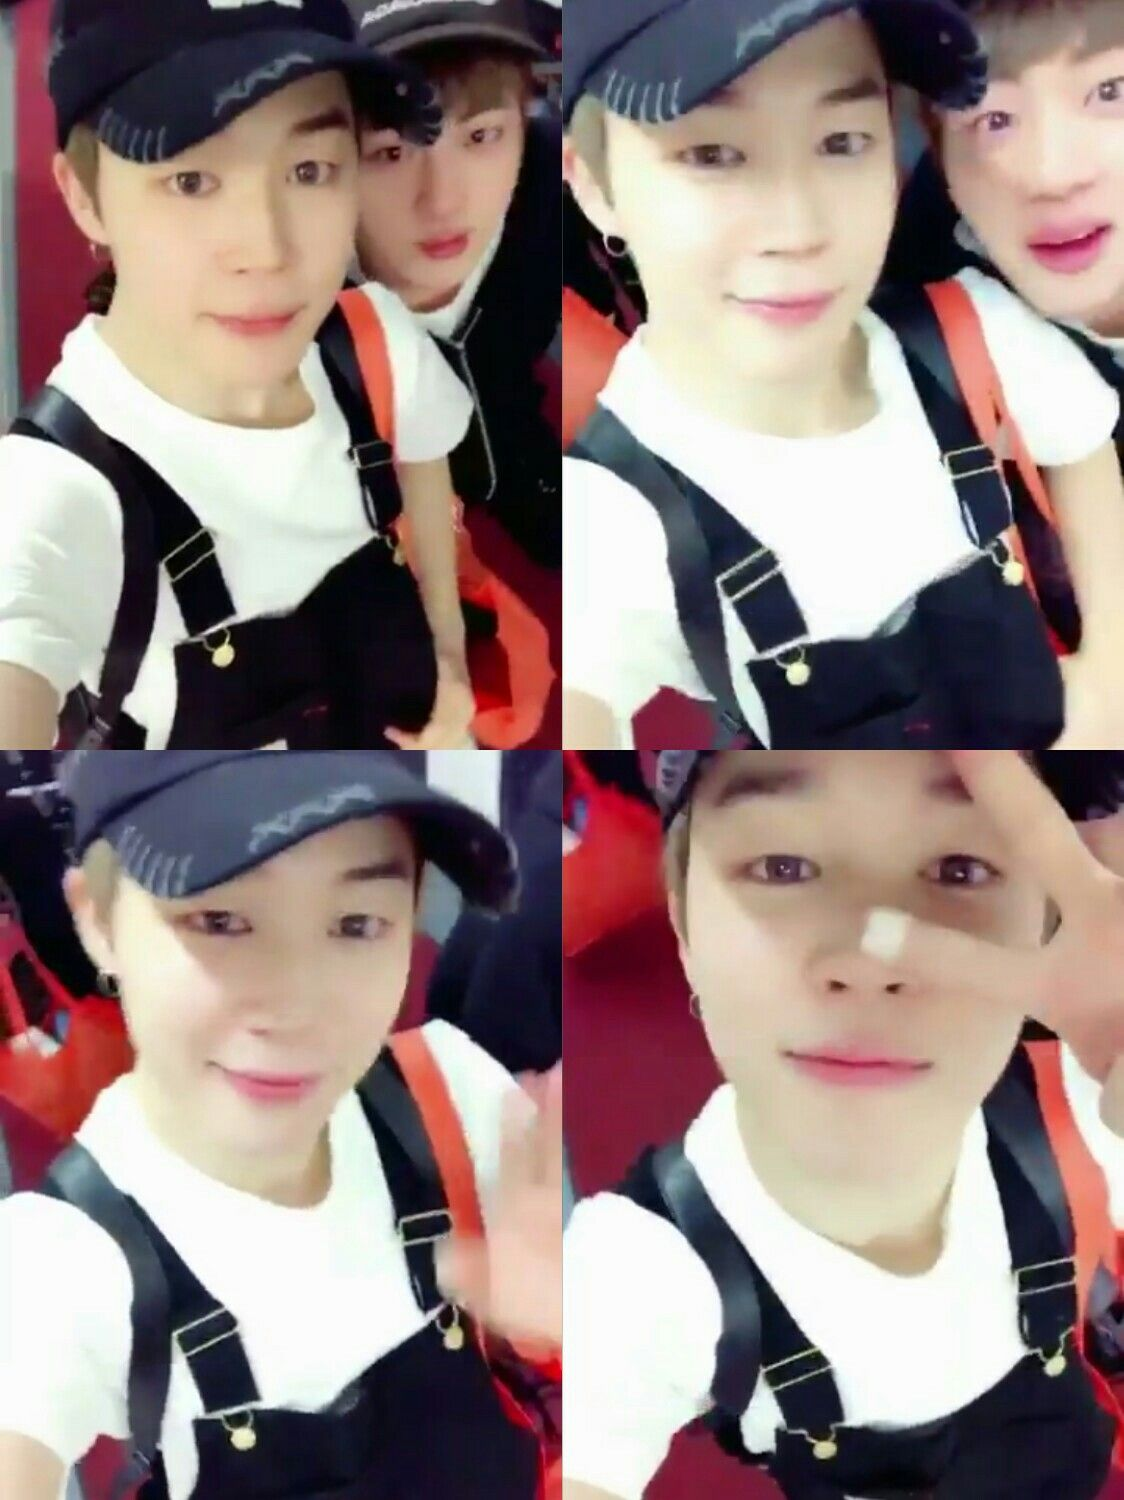 Jimin and Jin ❤ [BTS Trans Video Tweet] 오늘 엄청 신나는 하루였어요 고마워요 #JIMIN #Thanks_Newark / It was a really exciting day, today Thank you #JIMIN #Thanks_Newark (Thank you Seokmin!!! Our hardworking cutiess) #BTS #방탄소년단